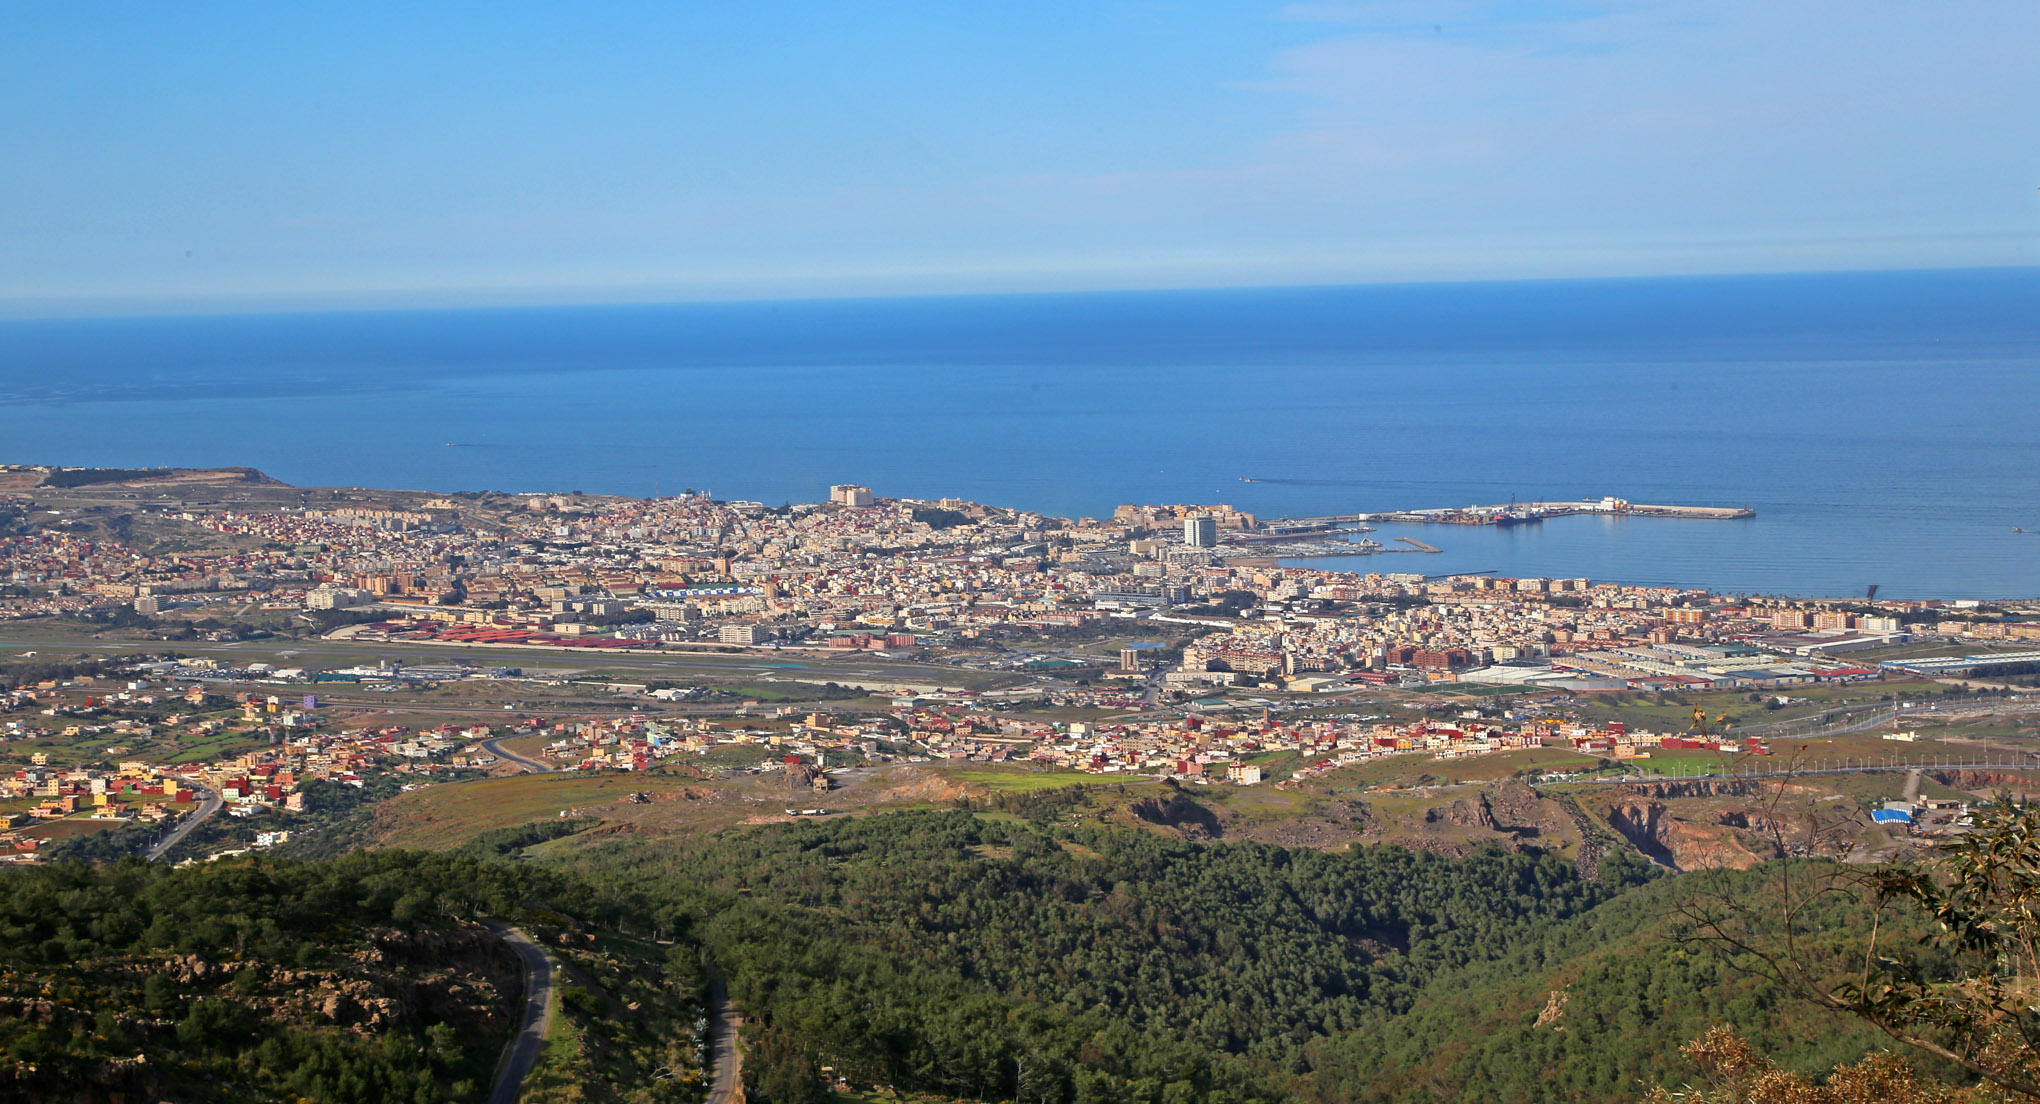 View of Melilla from Mt. Gourougou - 1